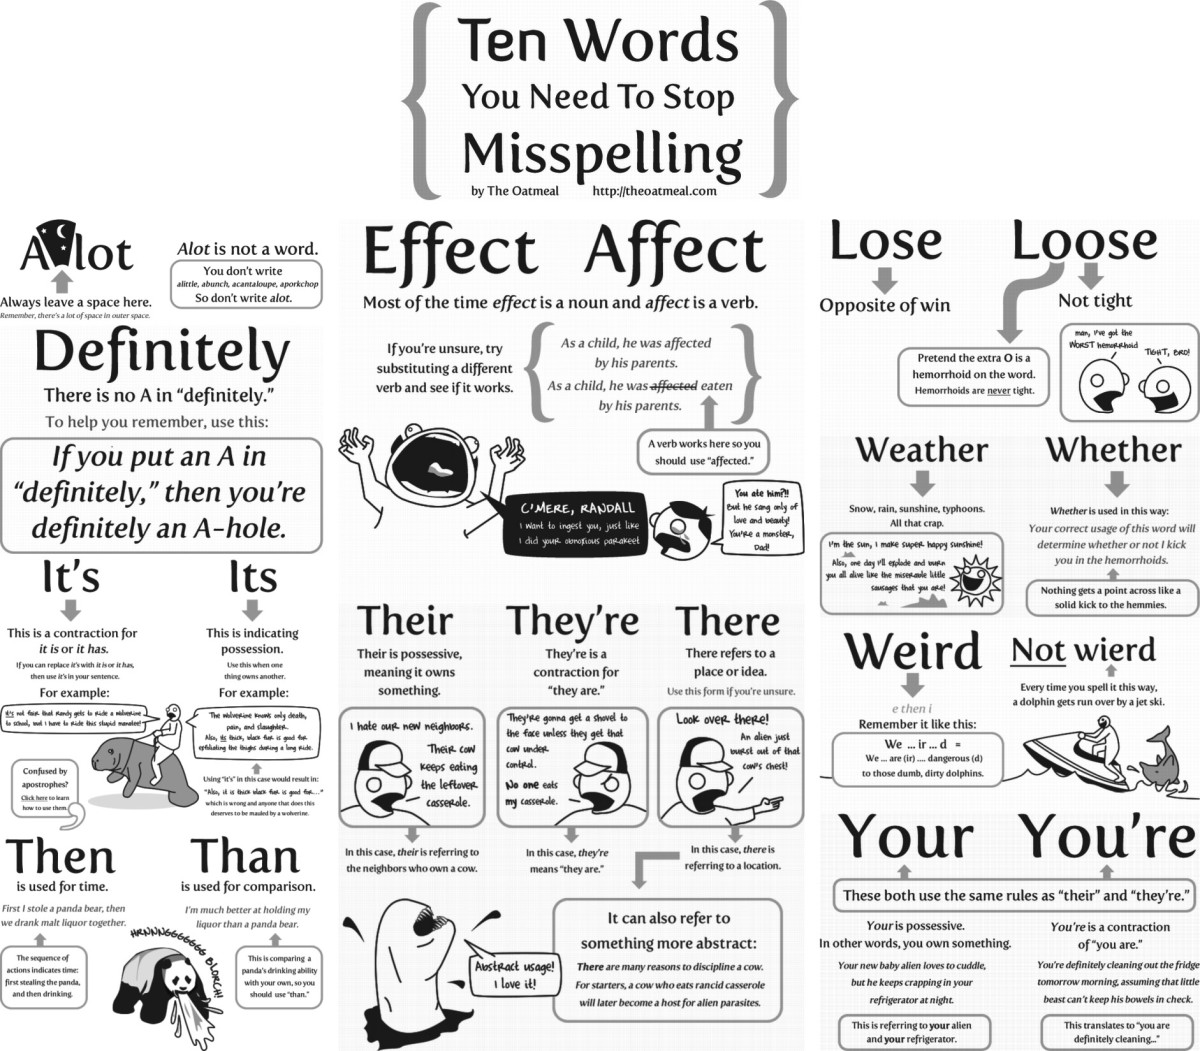 10 Words You Need to Stop Misspelling_The Oatmeal